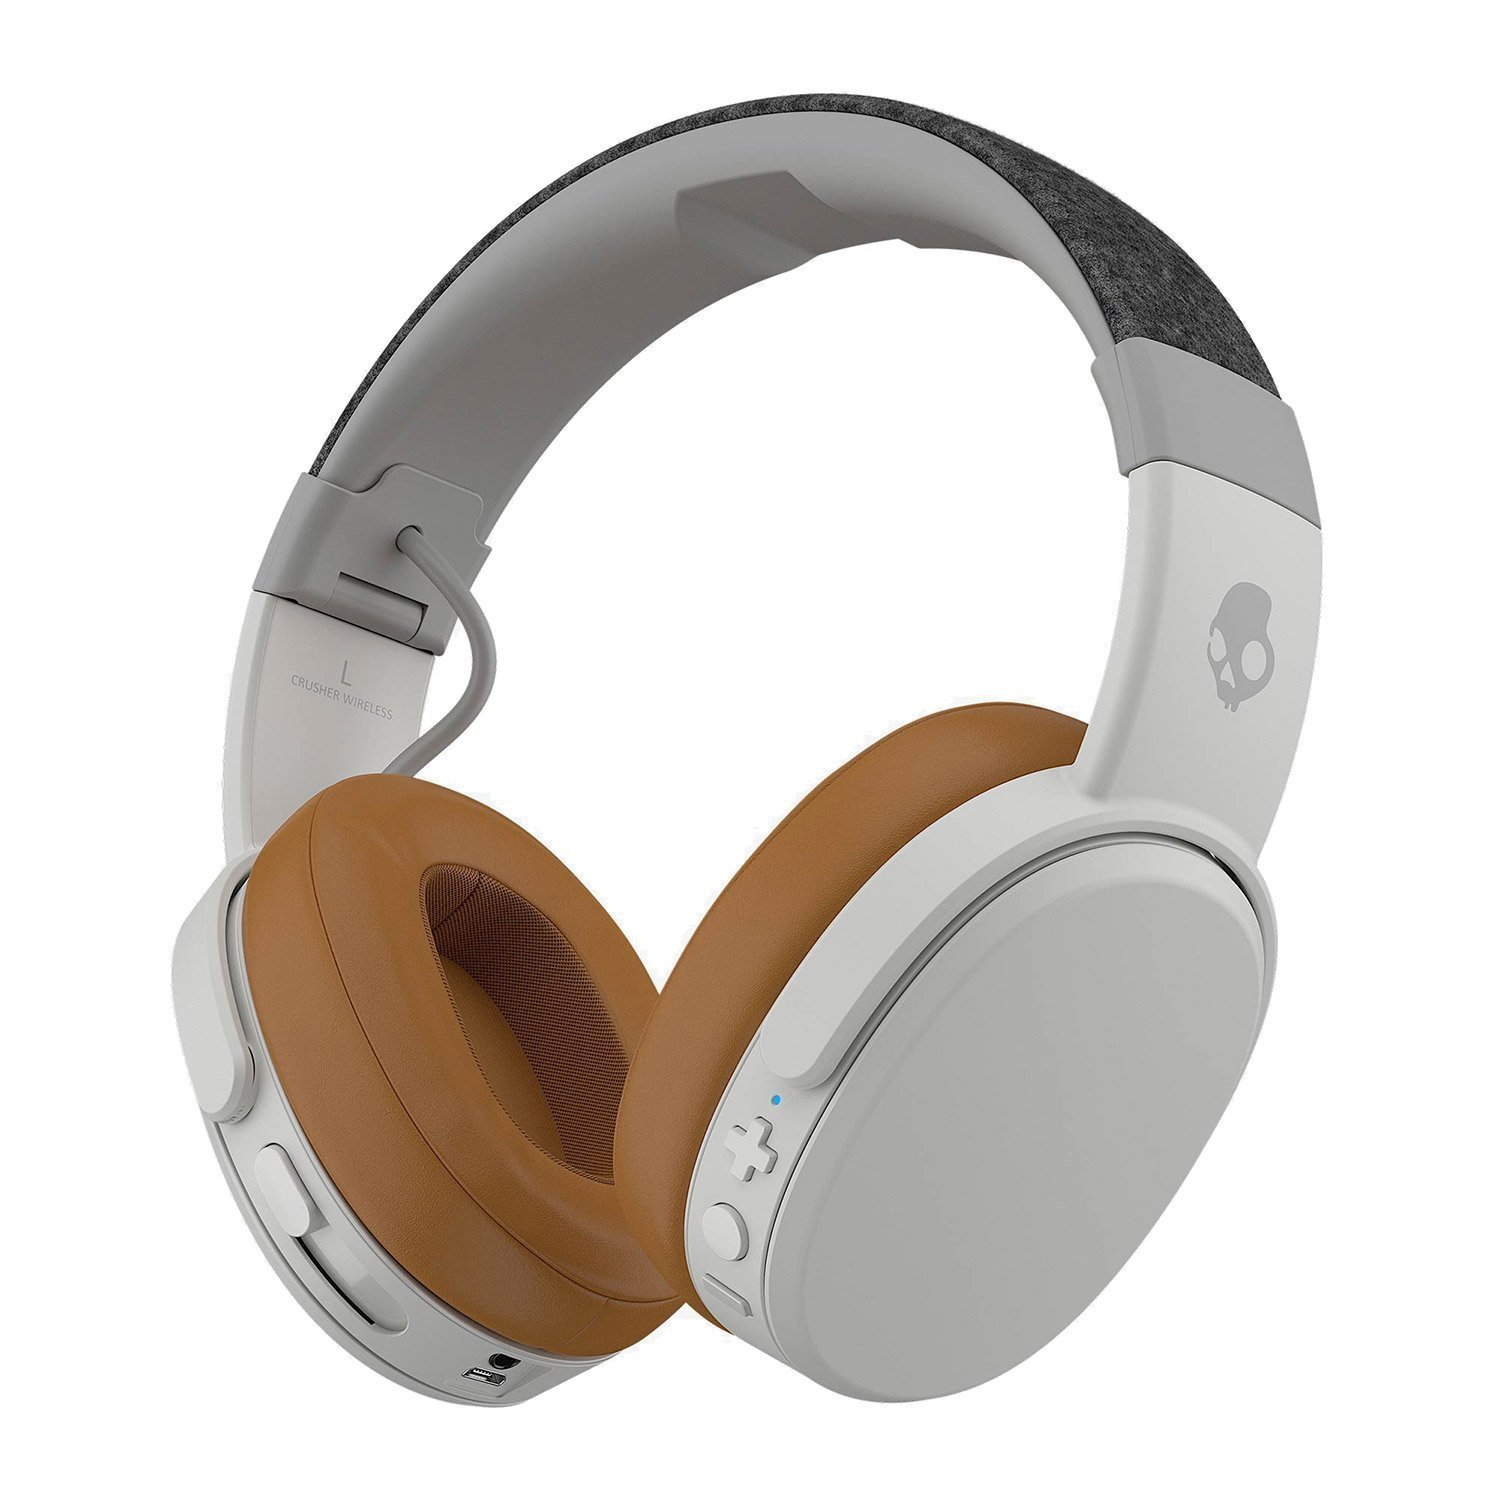 Skullcandy Crusher Over-Ear Headphones with Microphone Gray/Tan